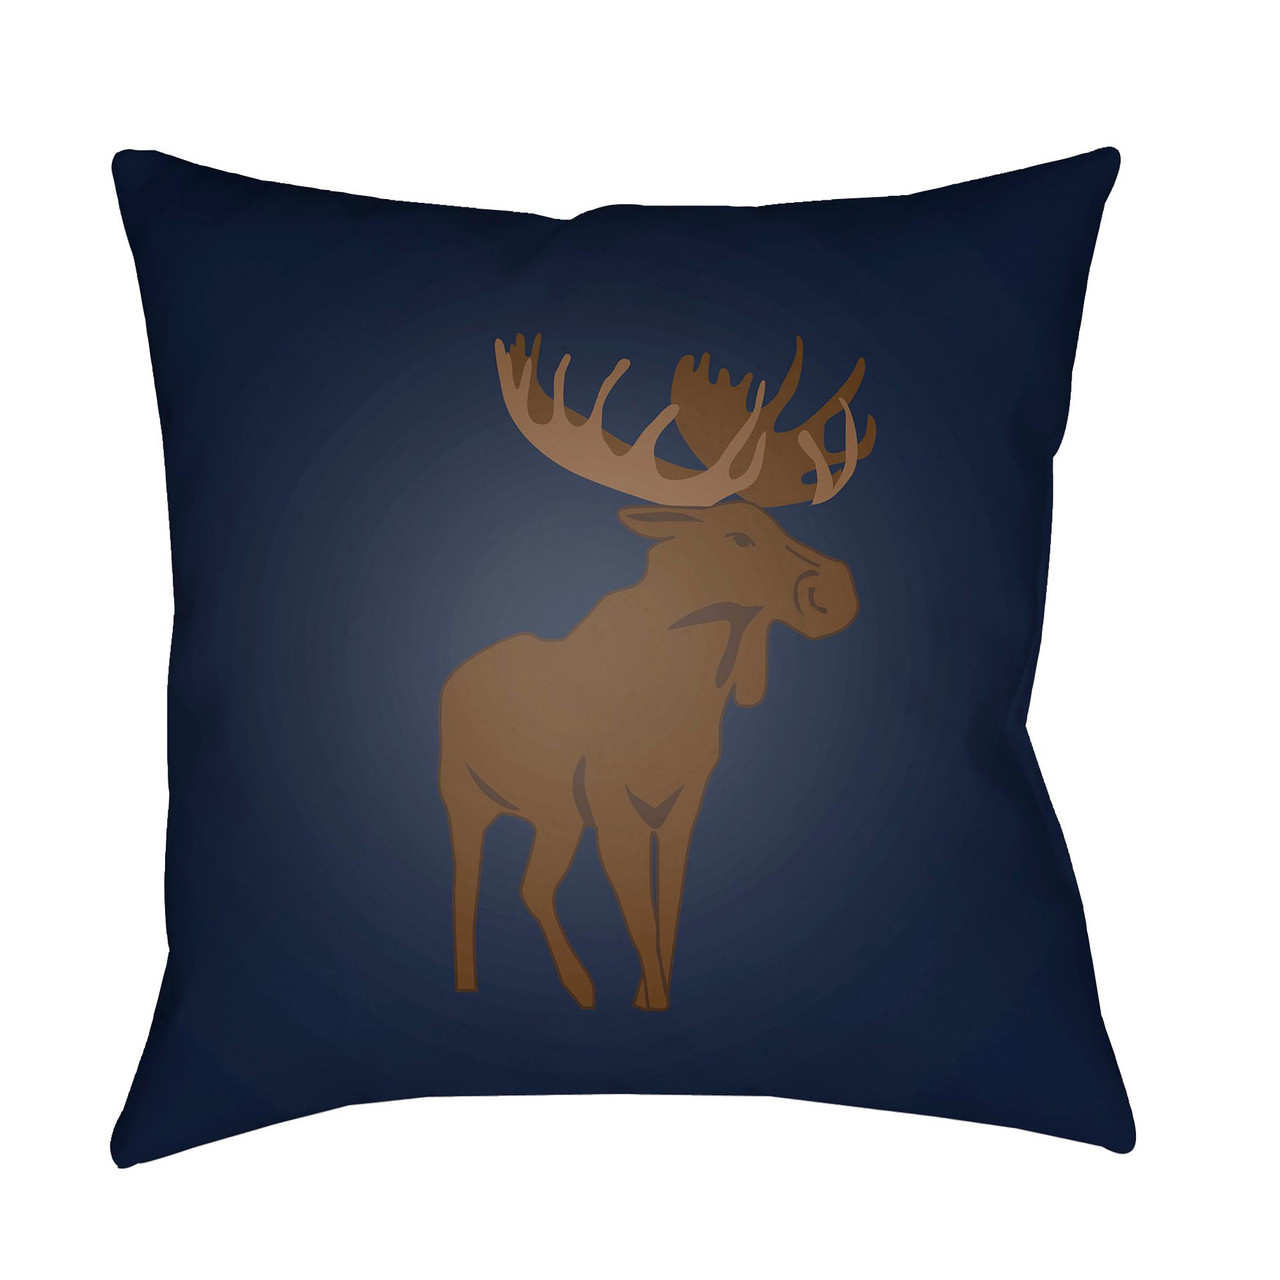 20 brown and navy blue moose printed square throw pillow cover